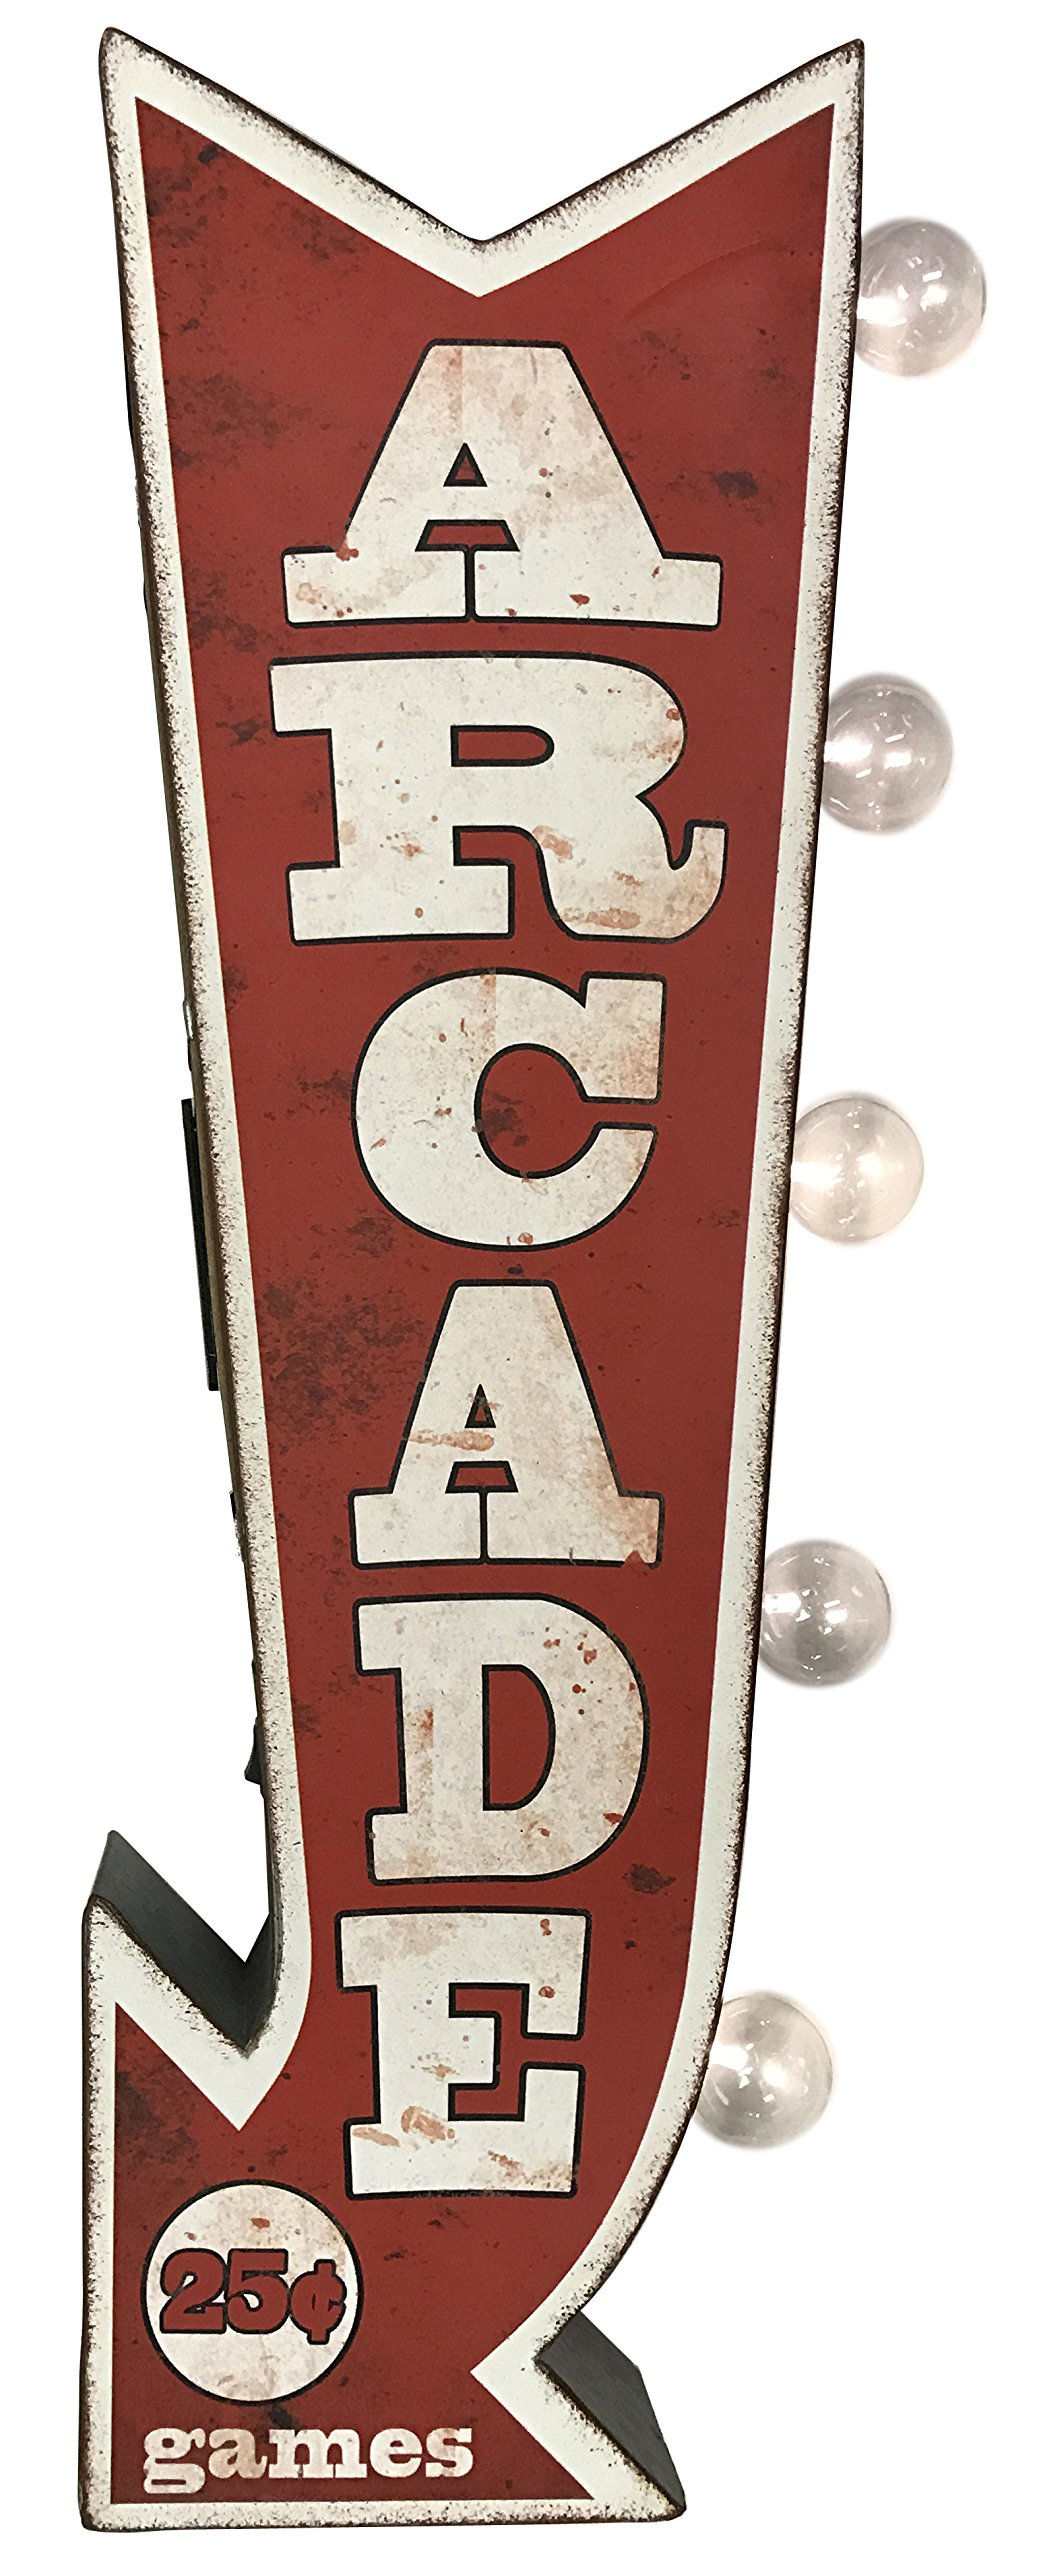 Arcade Reproduction Vintage Advertising Sign - Battery Powered LED Lights, Double Sided Metal Wall Mounted - 25 x 10 x 3 inches by American Art Decor